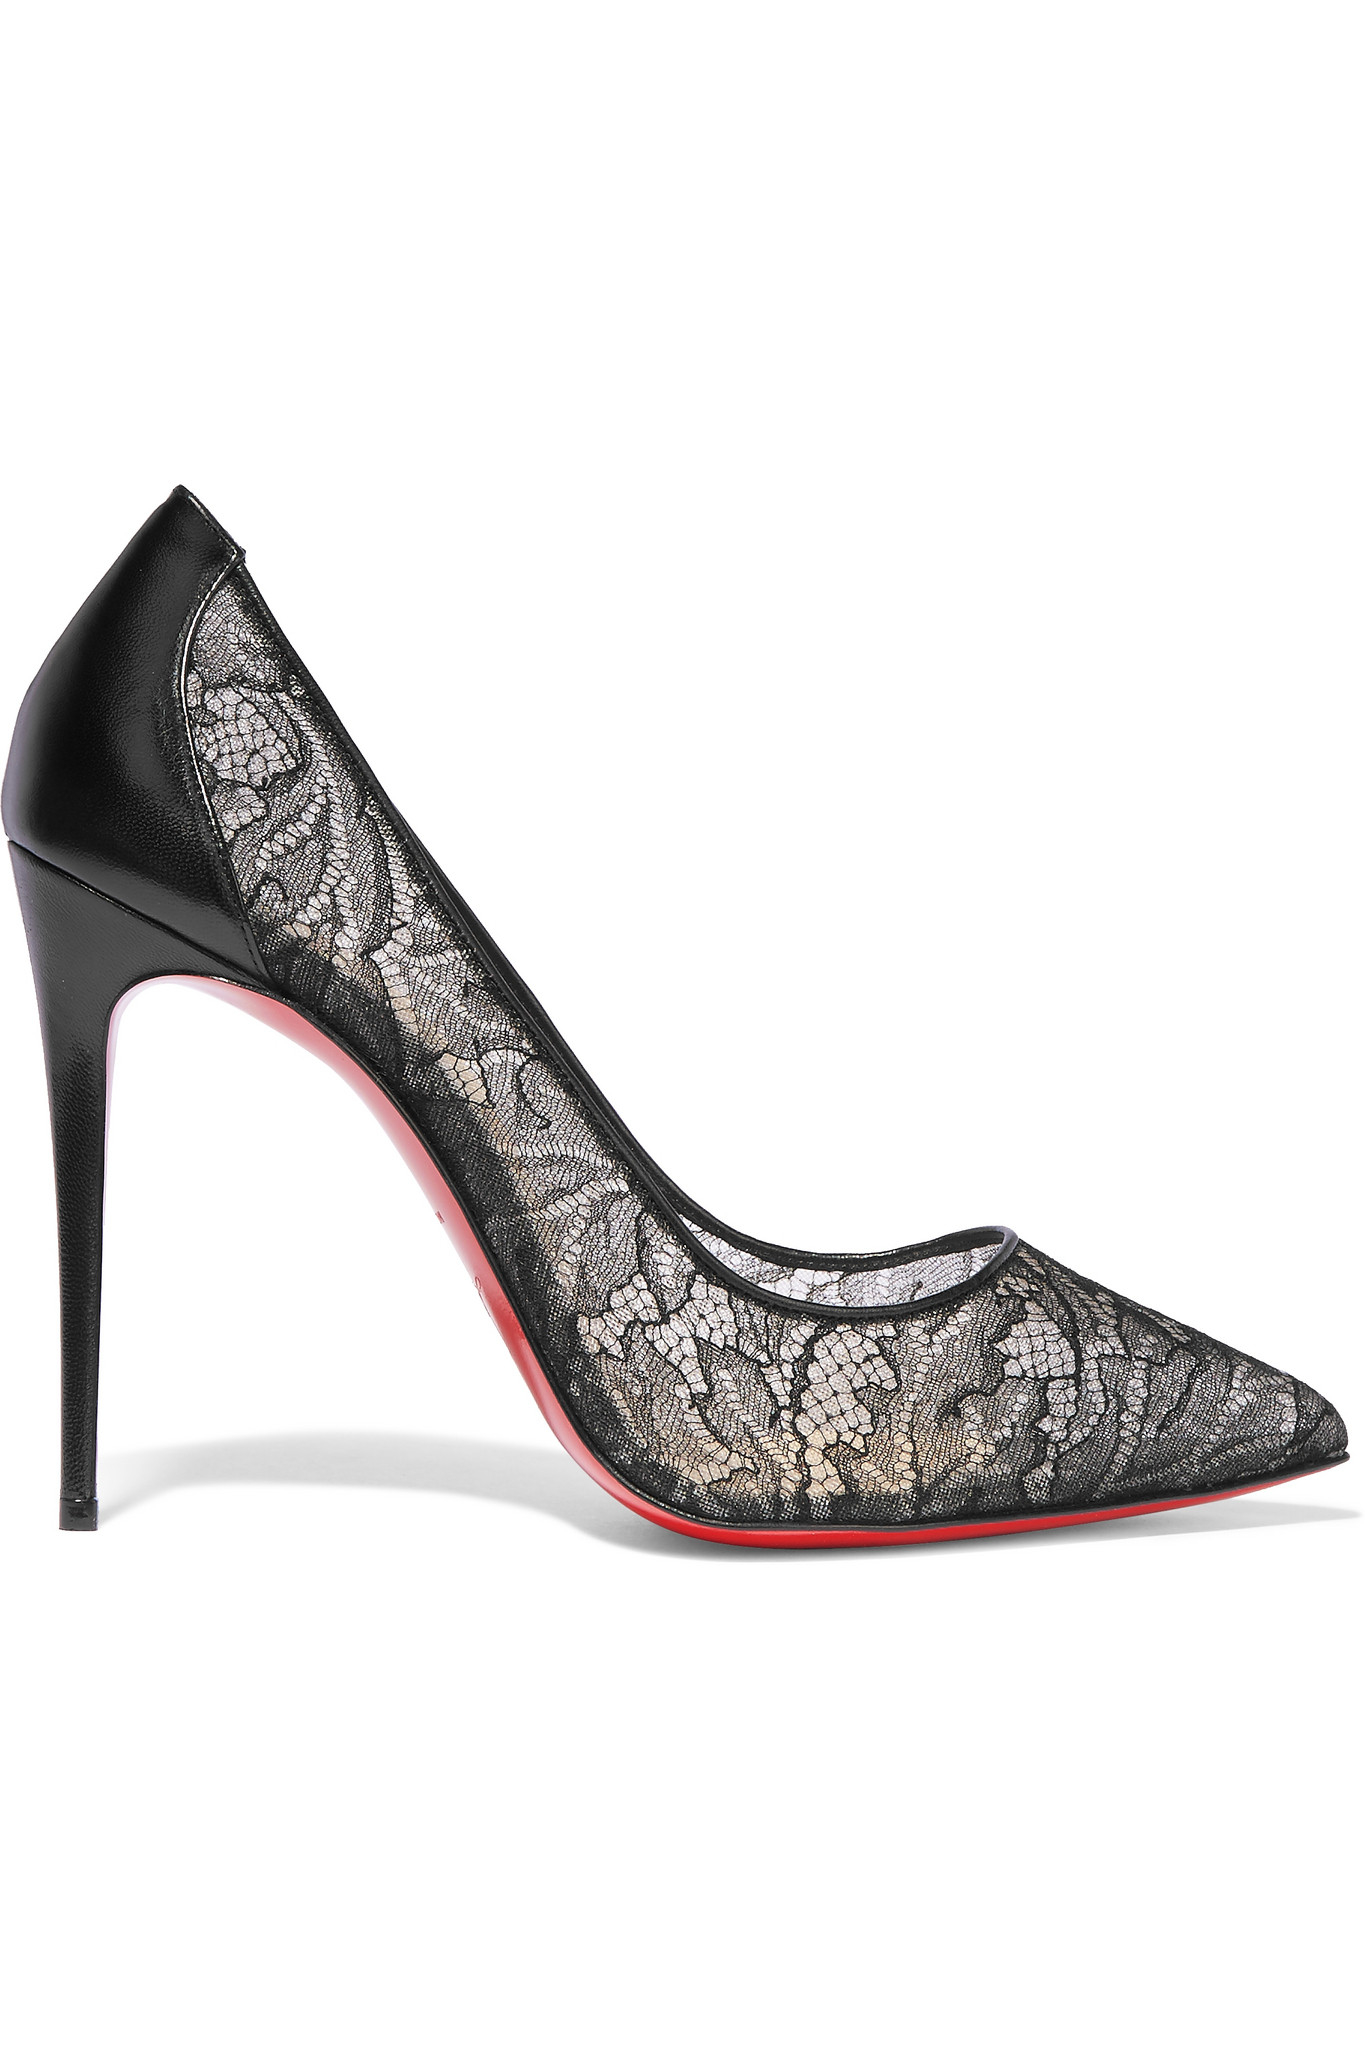 authentic christian louboutin on sale. Black Bedroom Furniture Sets. Home Design Ideas